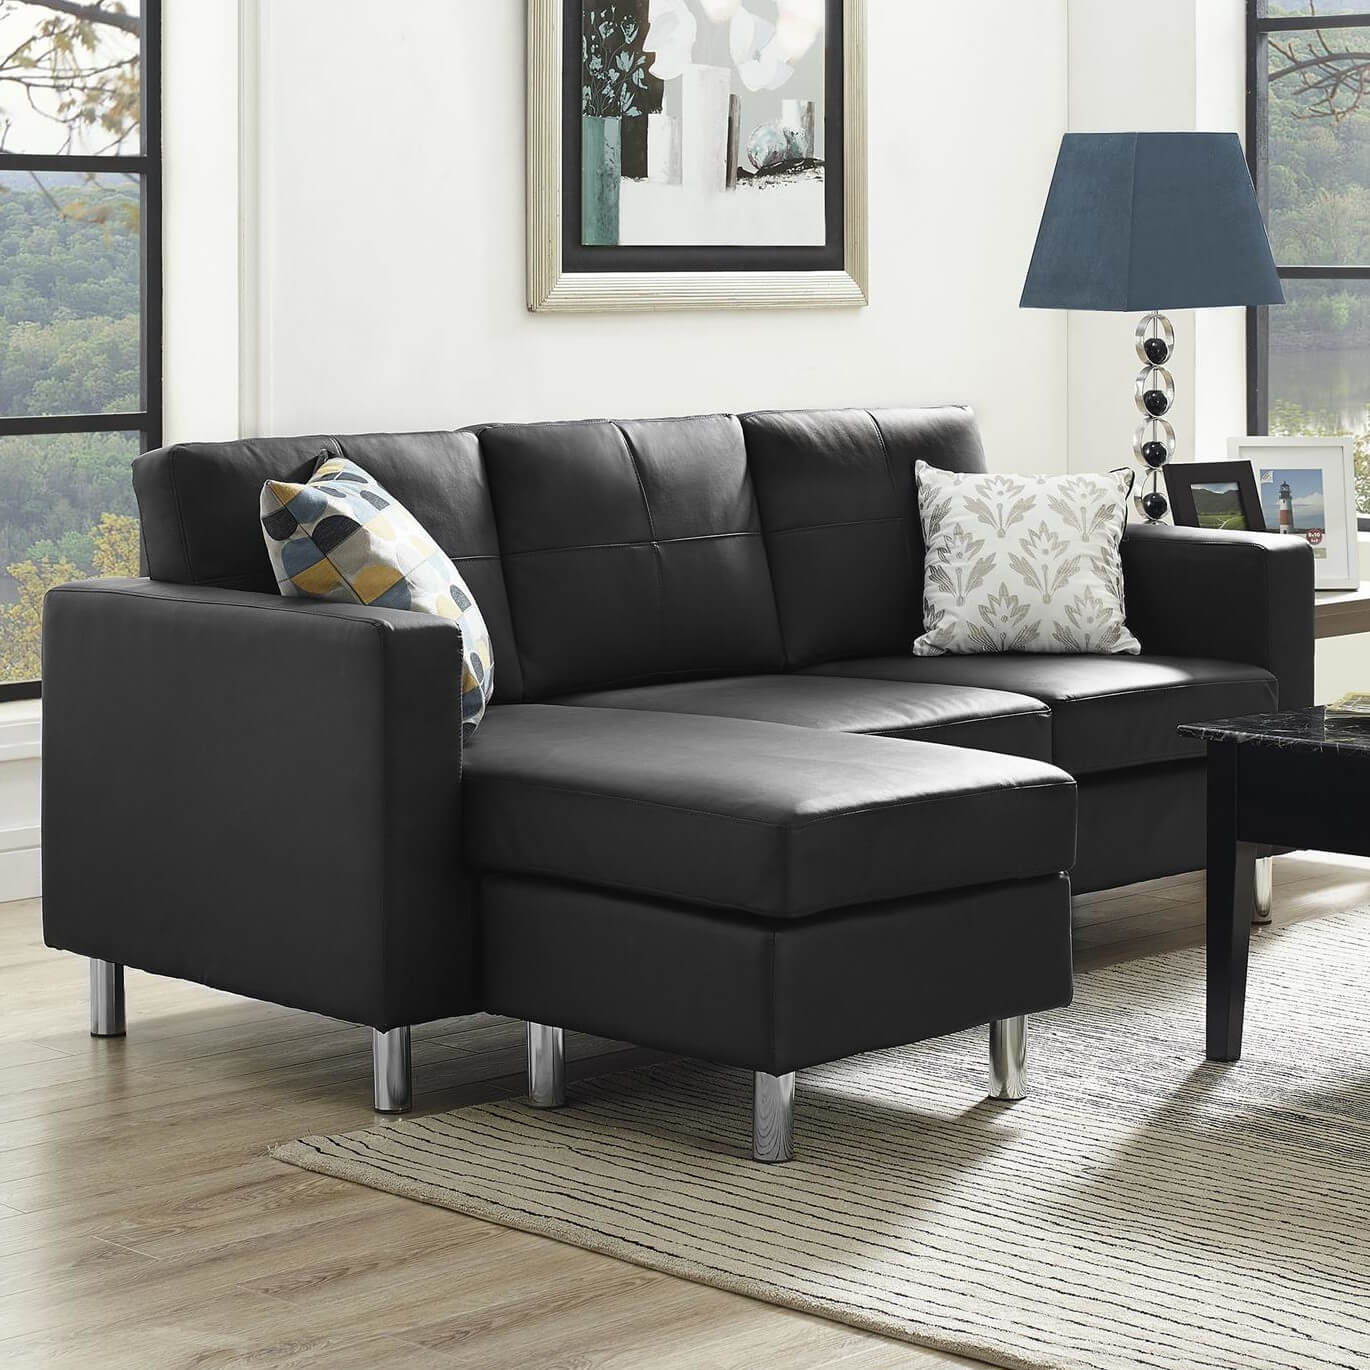 Office L Shape Couch With Ottoman For Apartment Black Leather Modern Bonded Leather Upholstered Sectional Sofa Couch With Reversible Chaise Lounge Living Room Home Kitchen Furniture